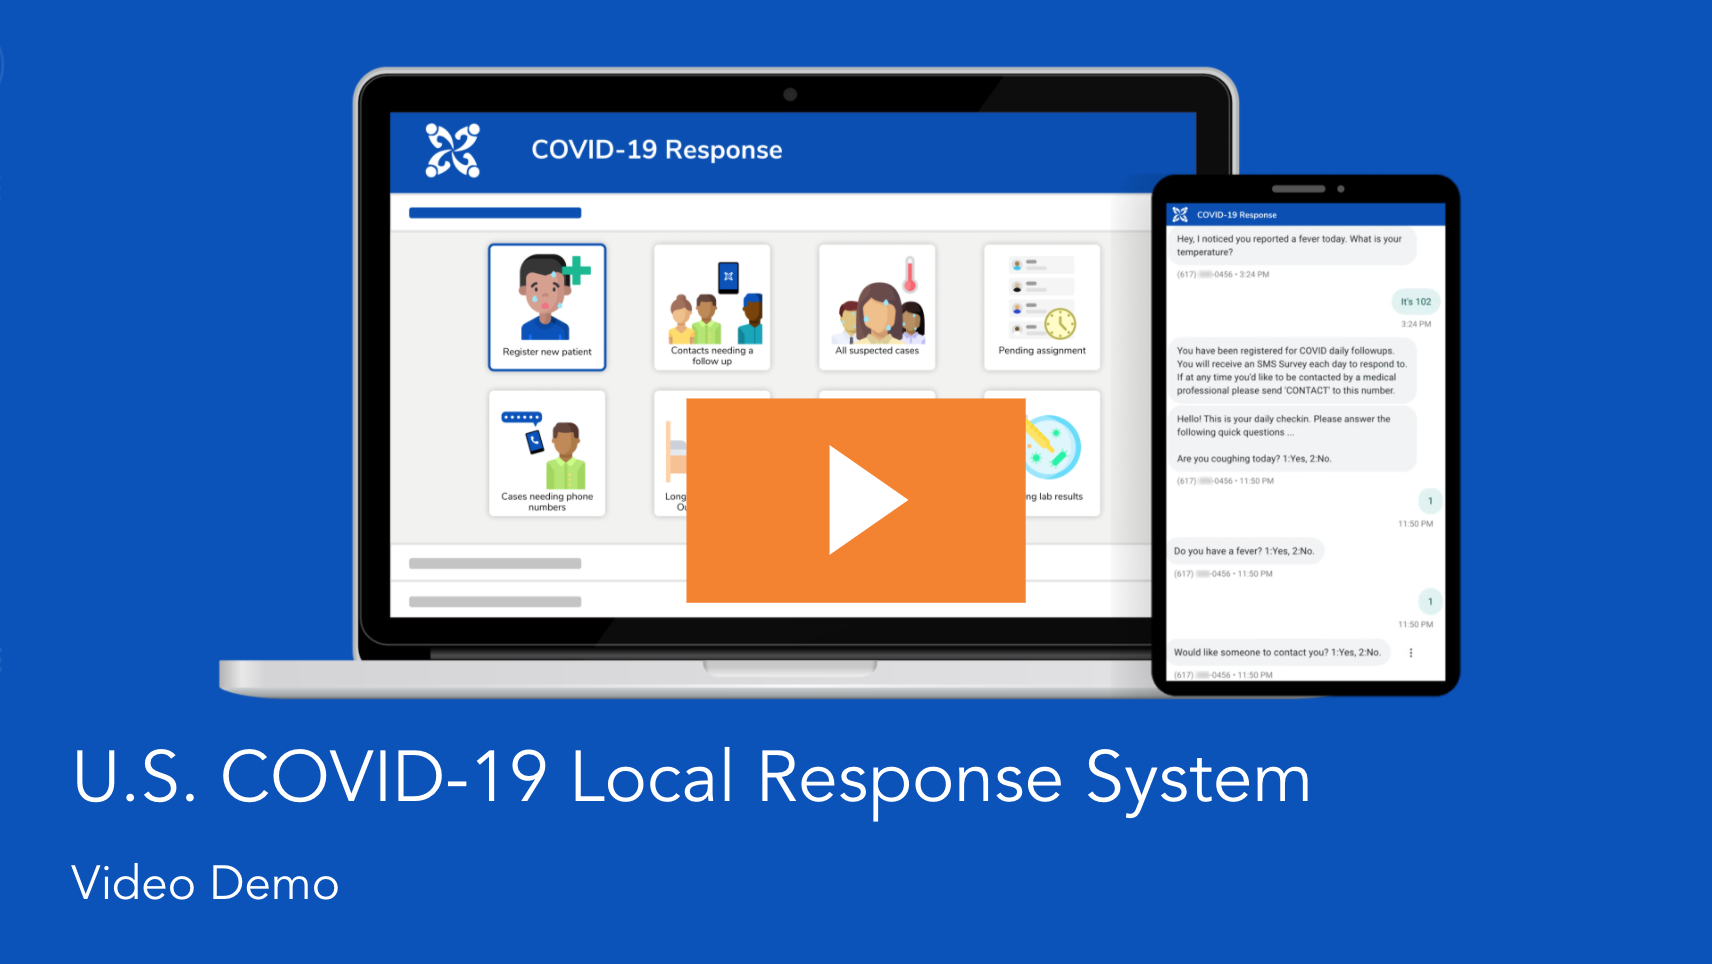 Click here to view a demo of the US COVID-19 Local Response System